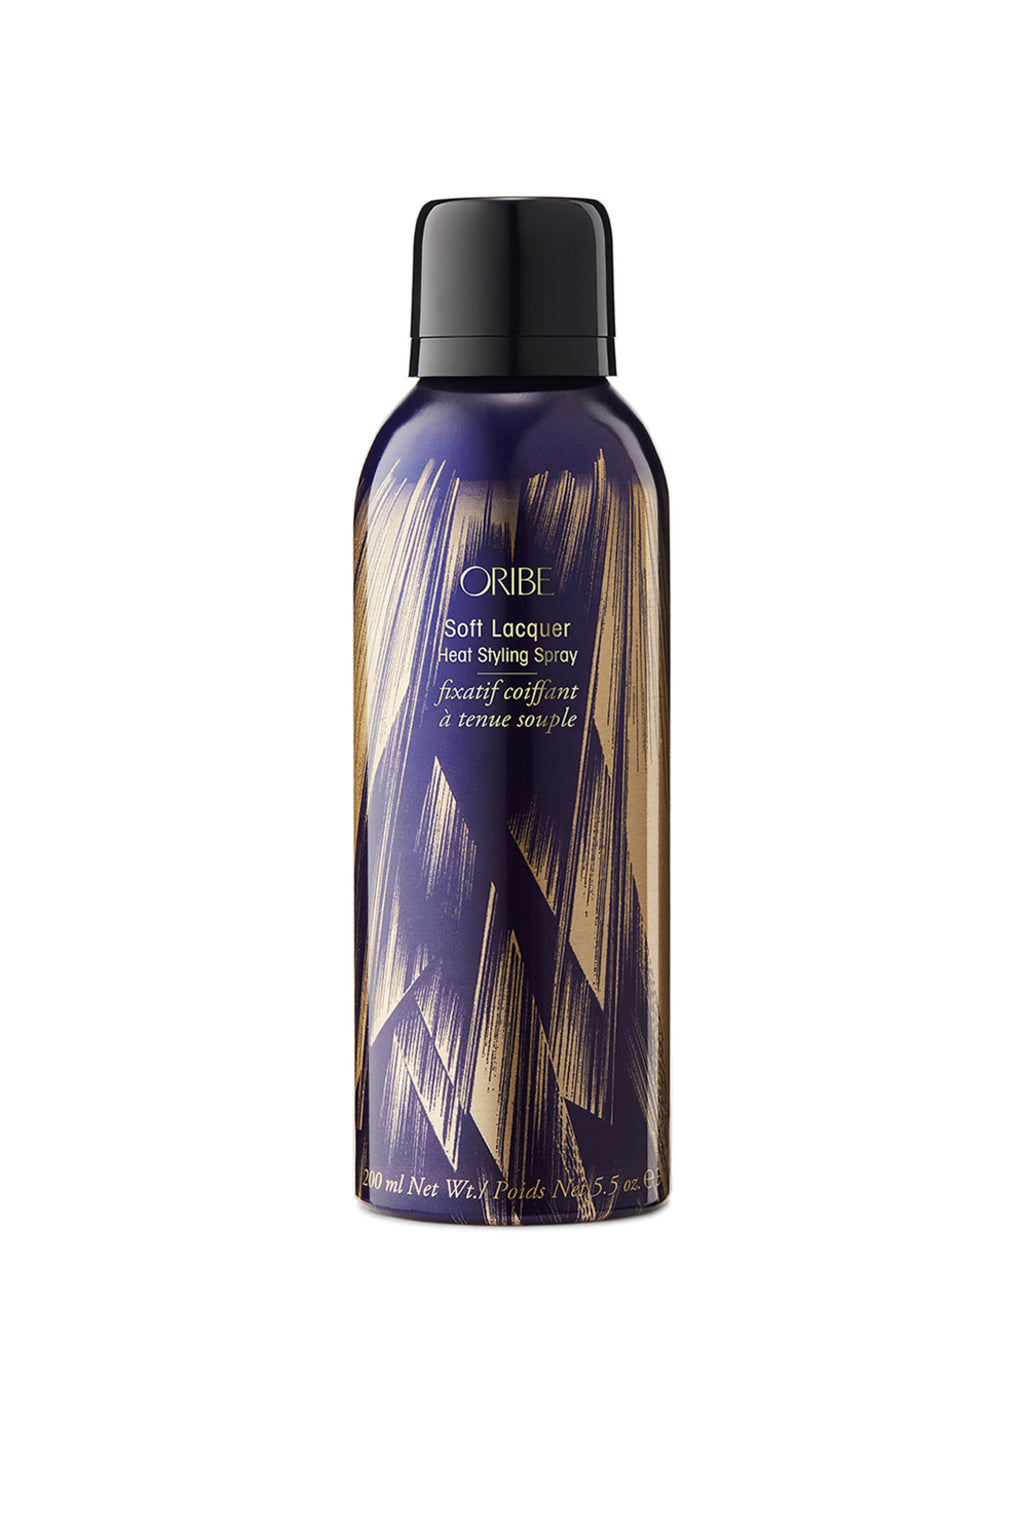 SOFT LACQUER HEAT STYLIST SPRAY - Jayden Presleigh, The Salon